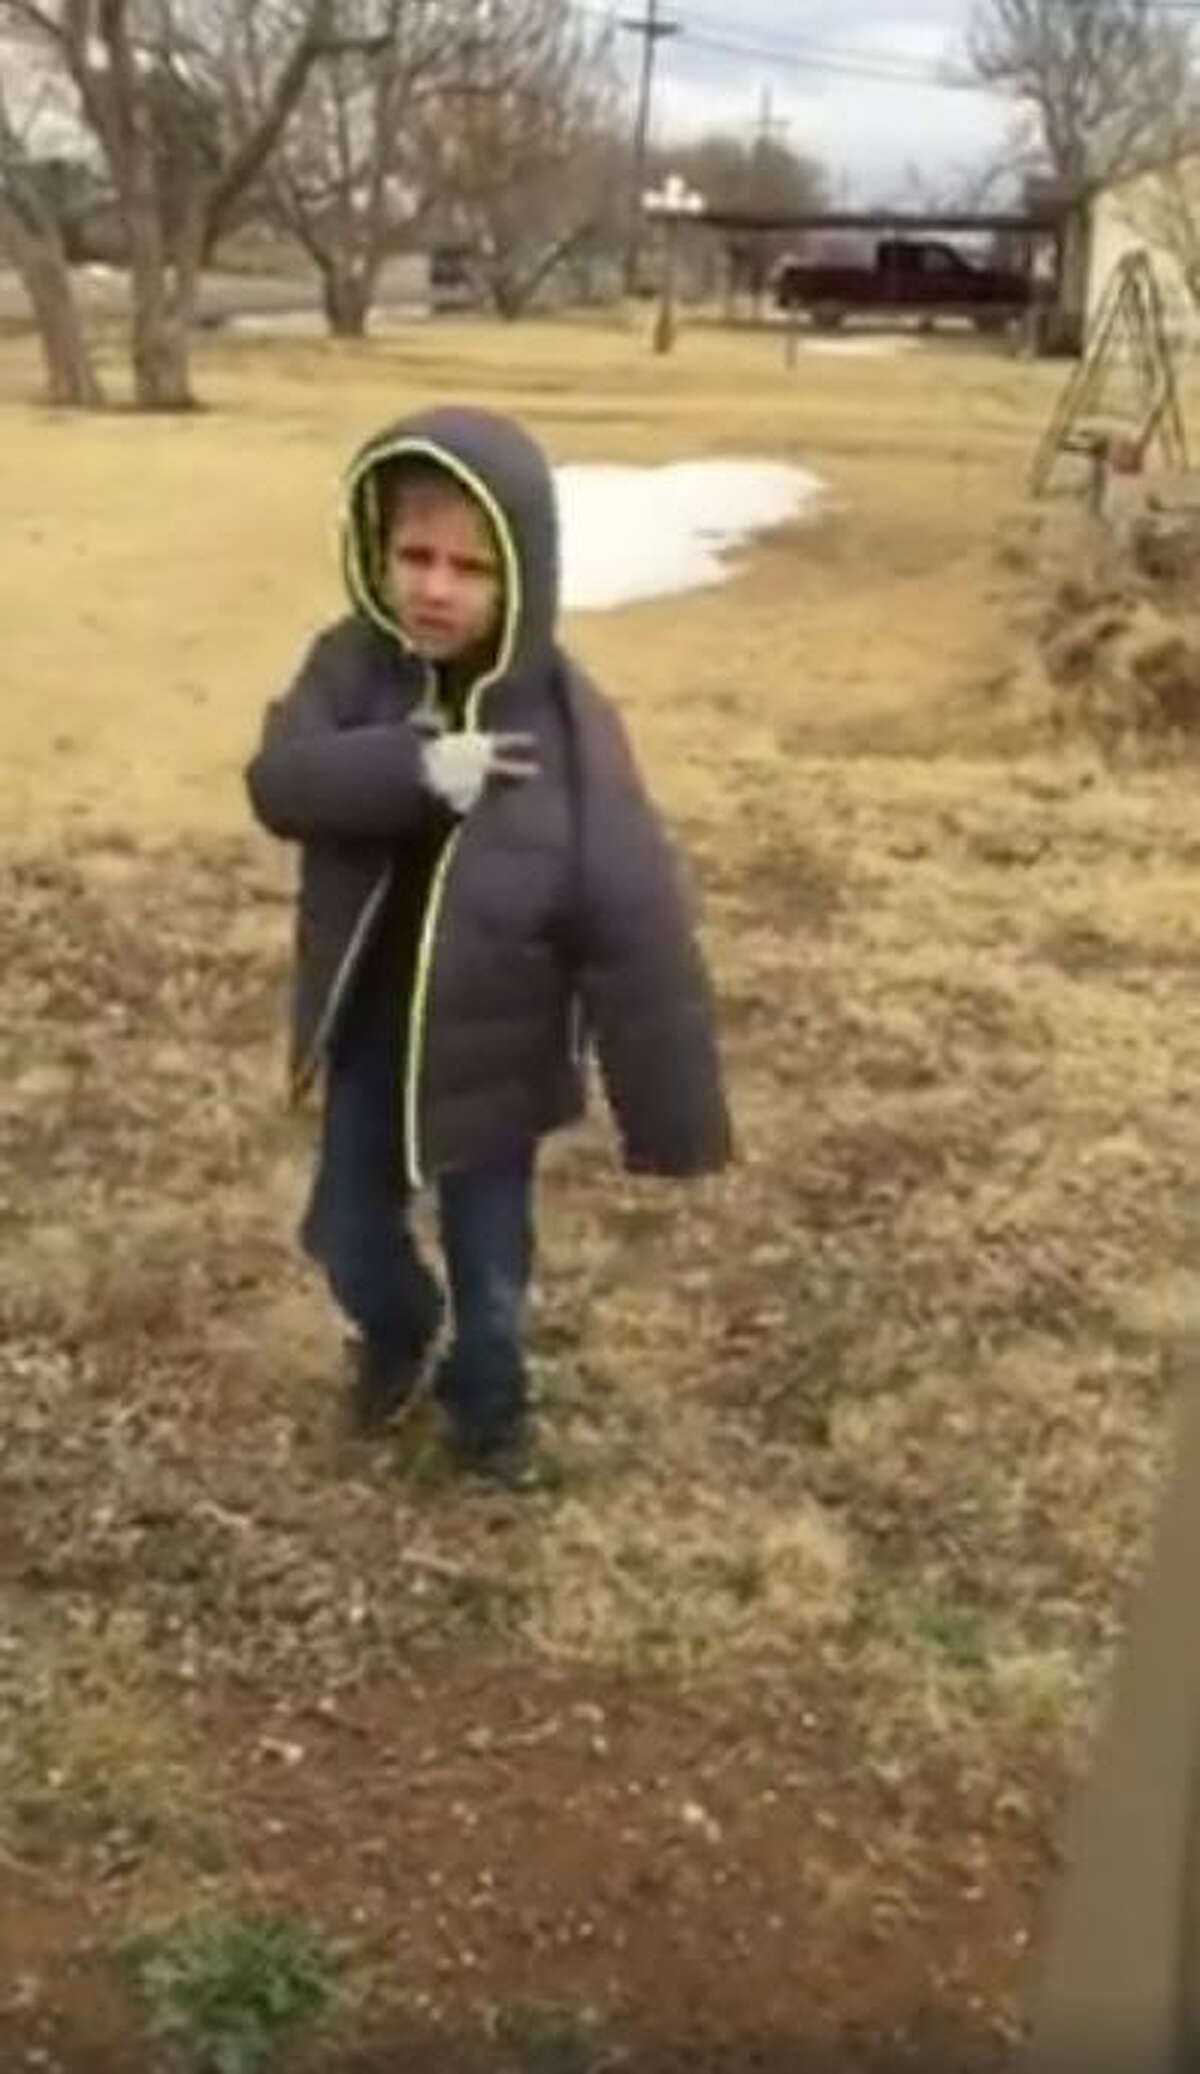 Heartwarming viral video out of Lubbock shows the emotional reunification of a young boy and his lost puppy. Image credit: Paula Williams via Facebook